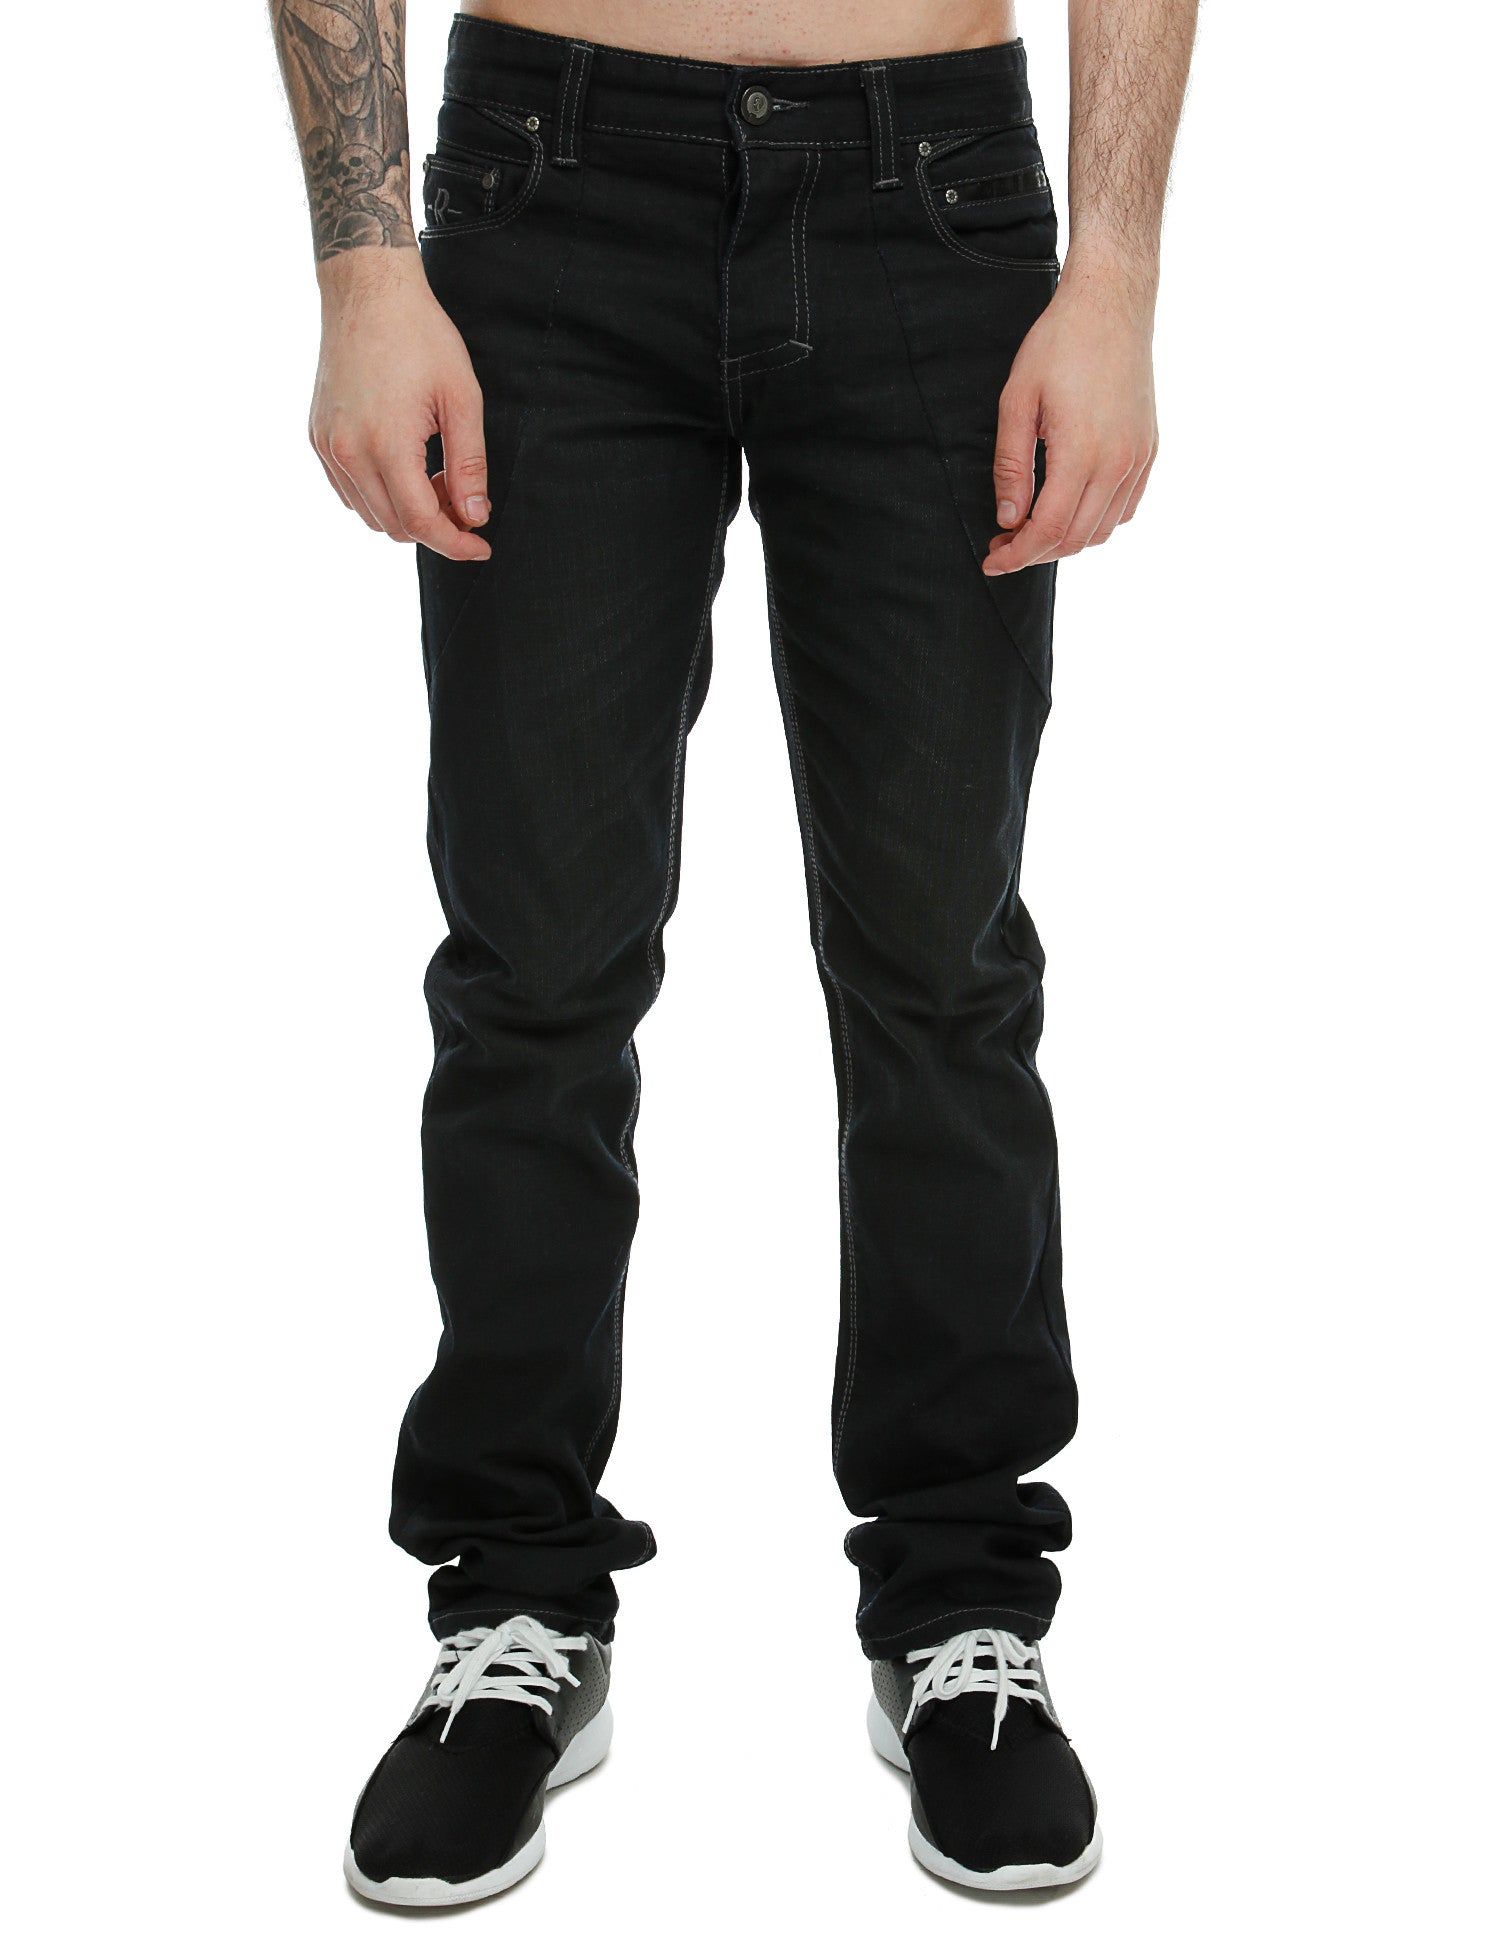 Rivaldi Slim Fit Jeans CIRPO Black